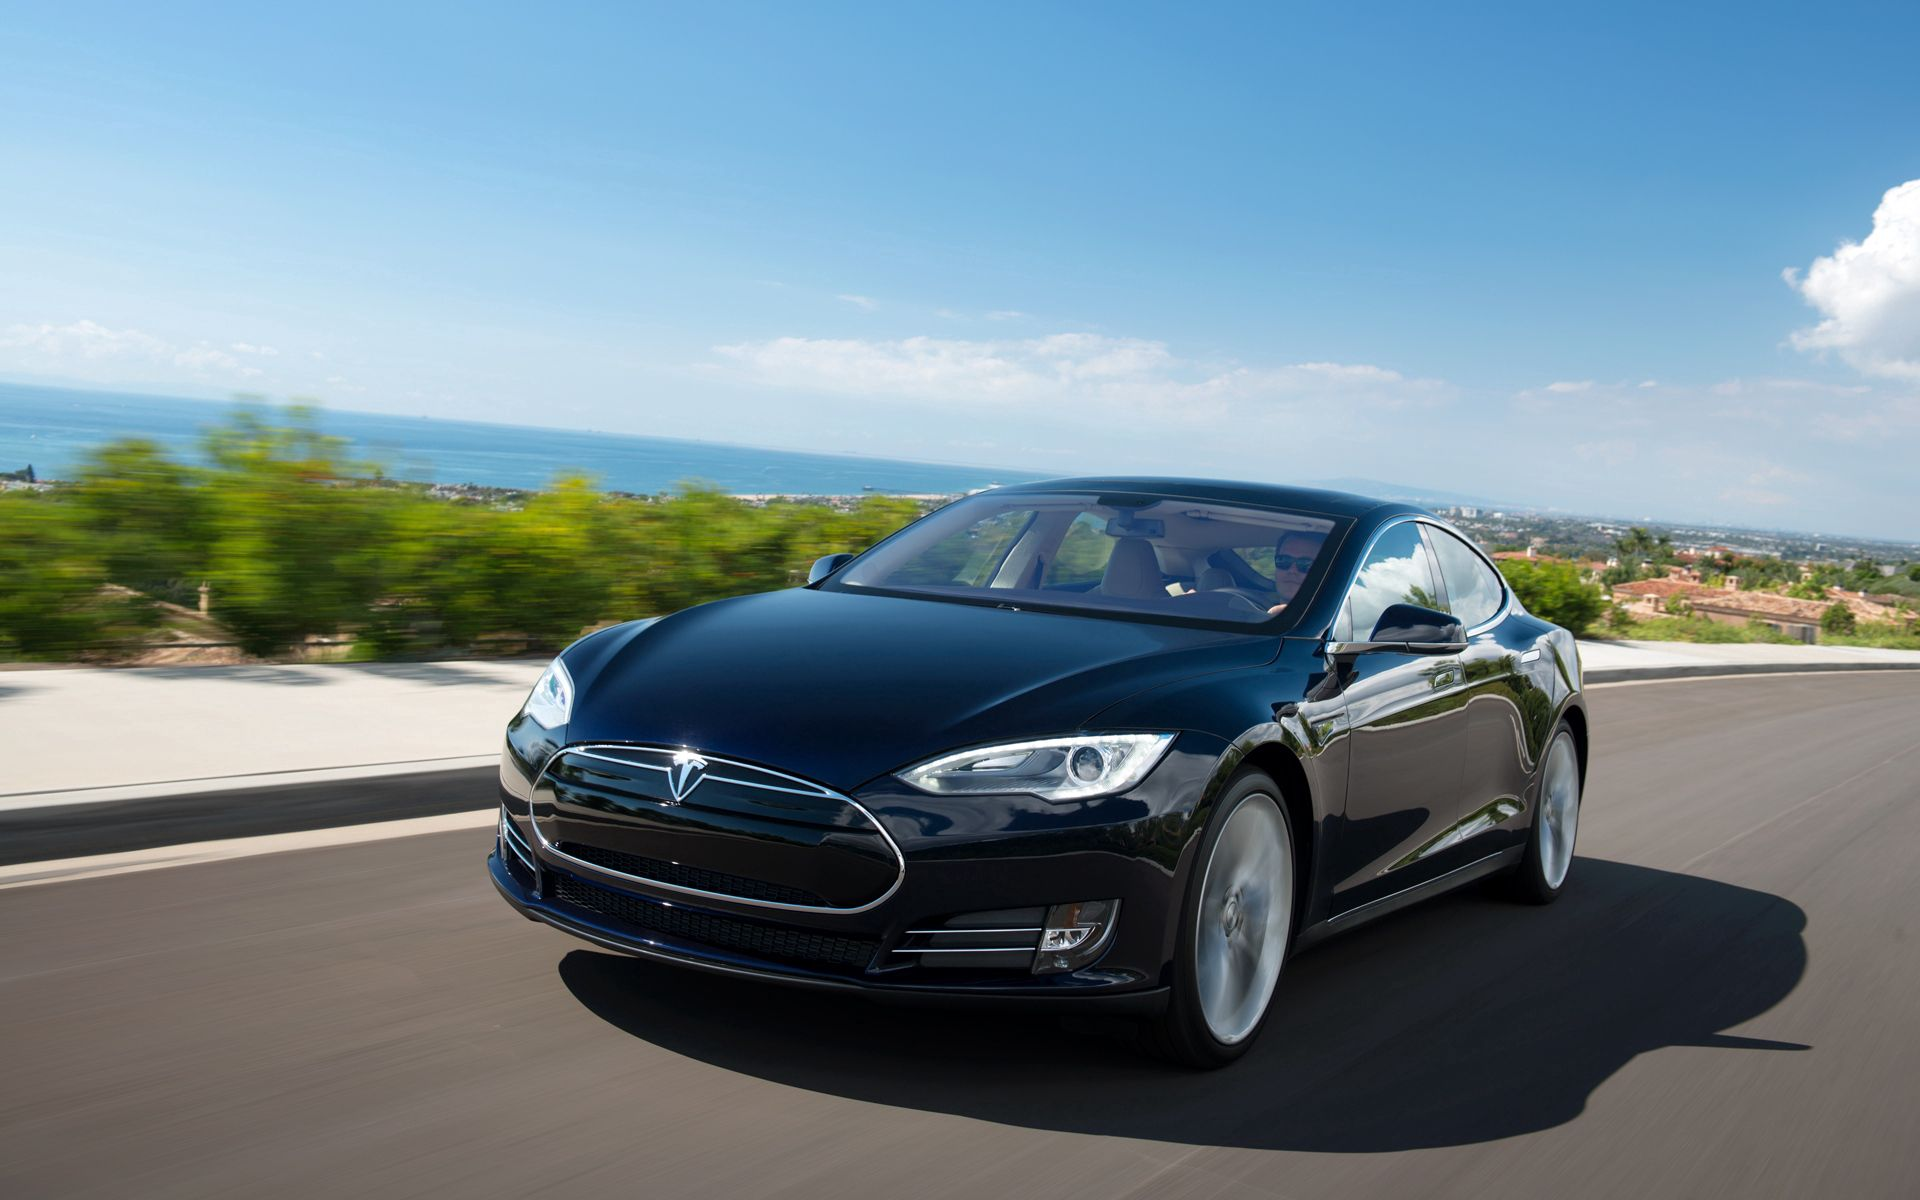 53995 download wallpaper Cars, Tesla, Model S, Tesla Model S, Road, Traffic, Movement screensavers and pictures for free